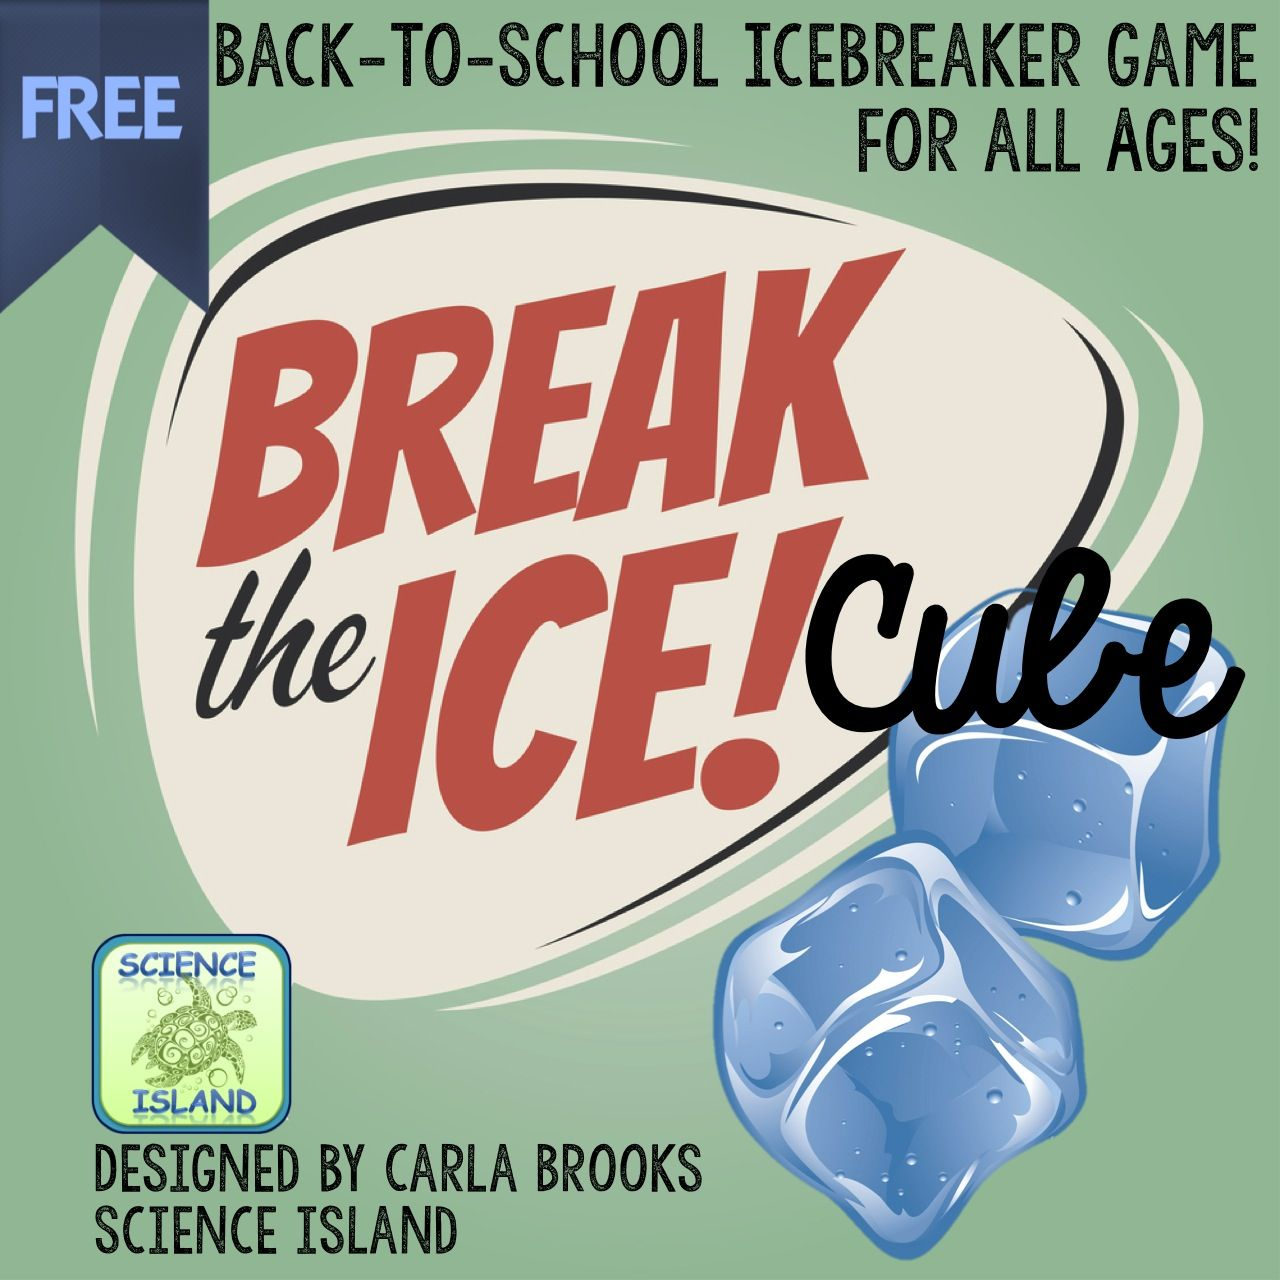 Break The Ice Cube Game Back To School Icebreaker